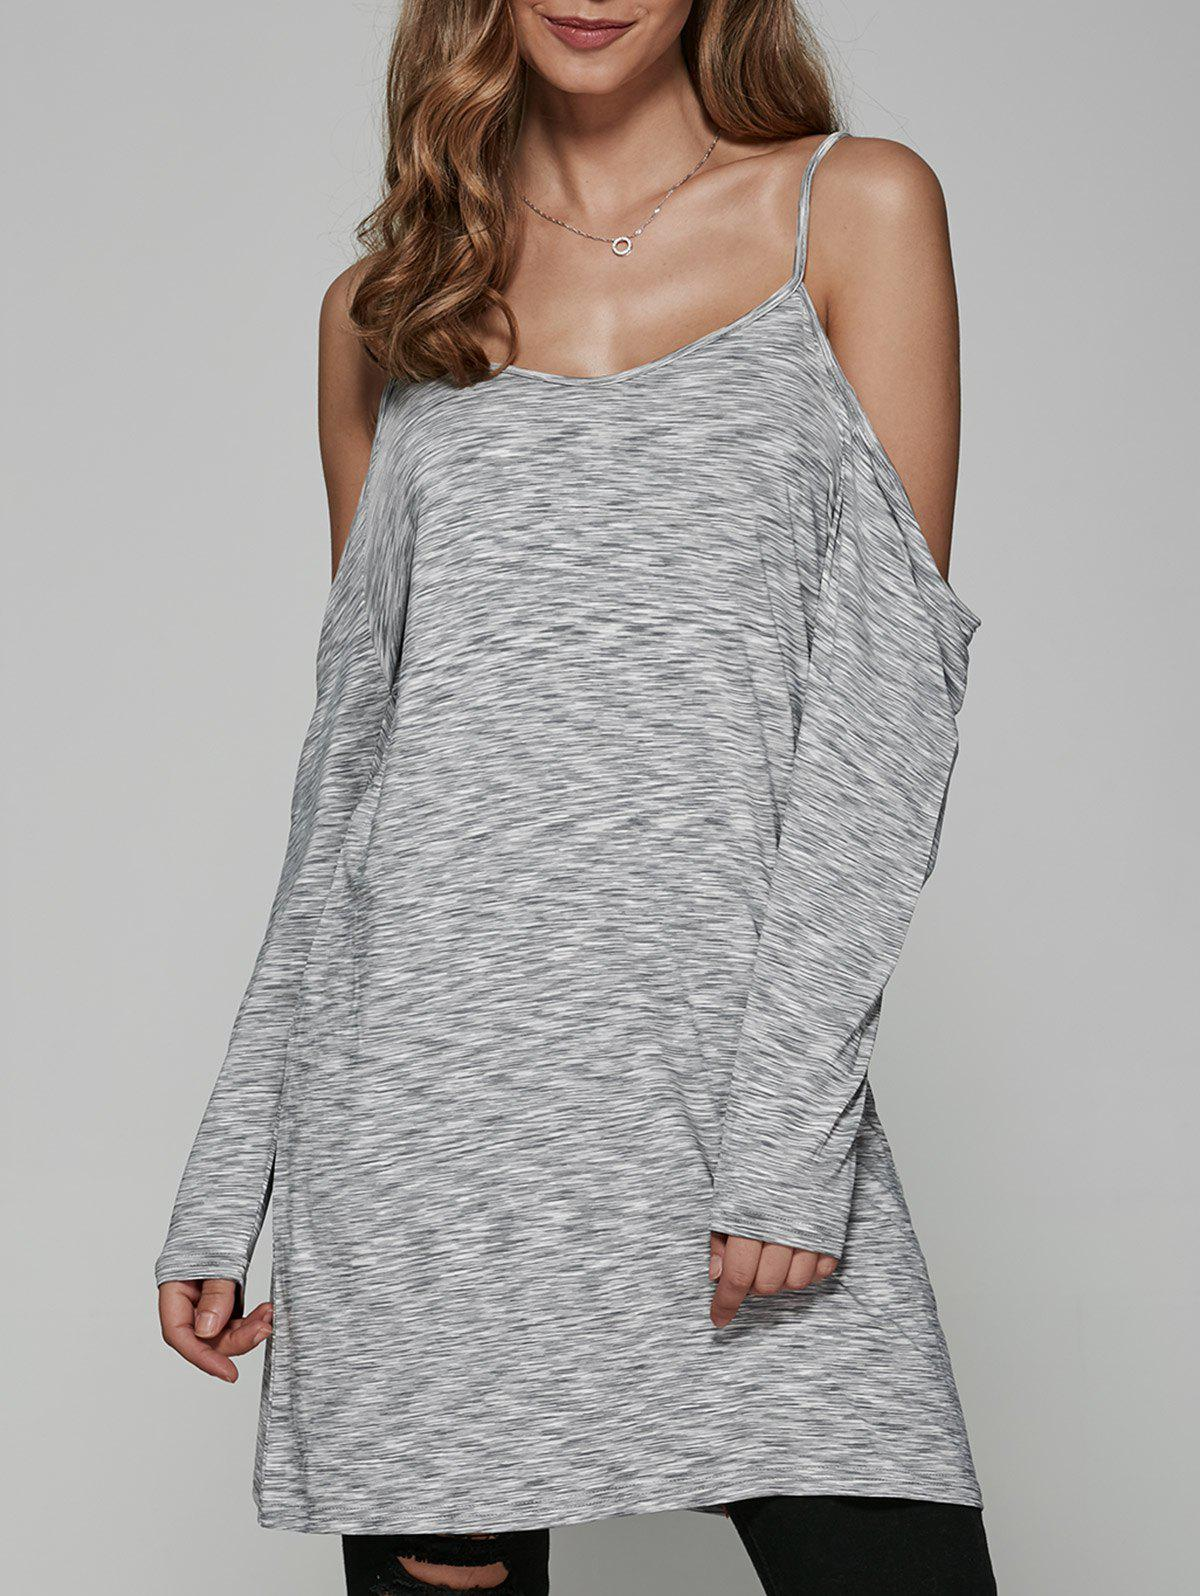 Cold Shoulder Heather Long T-Shirt - GRAY M